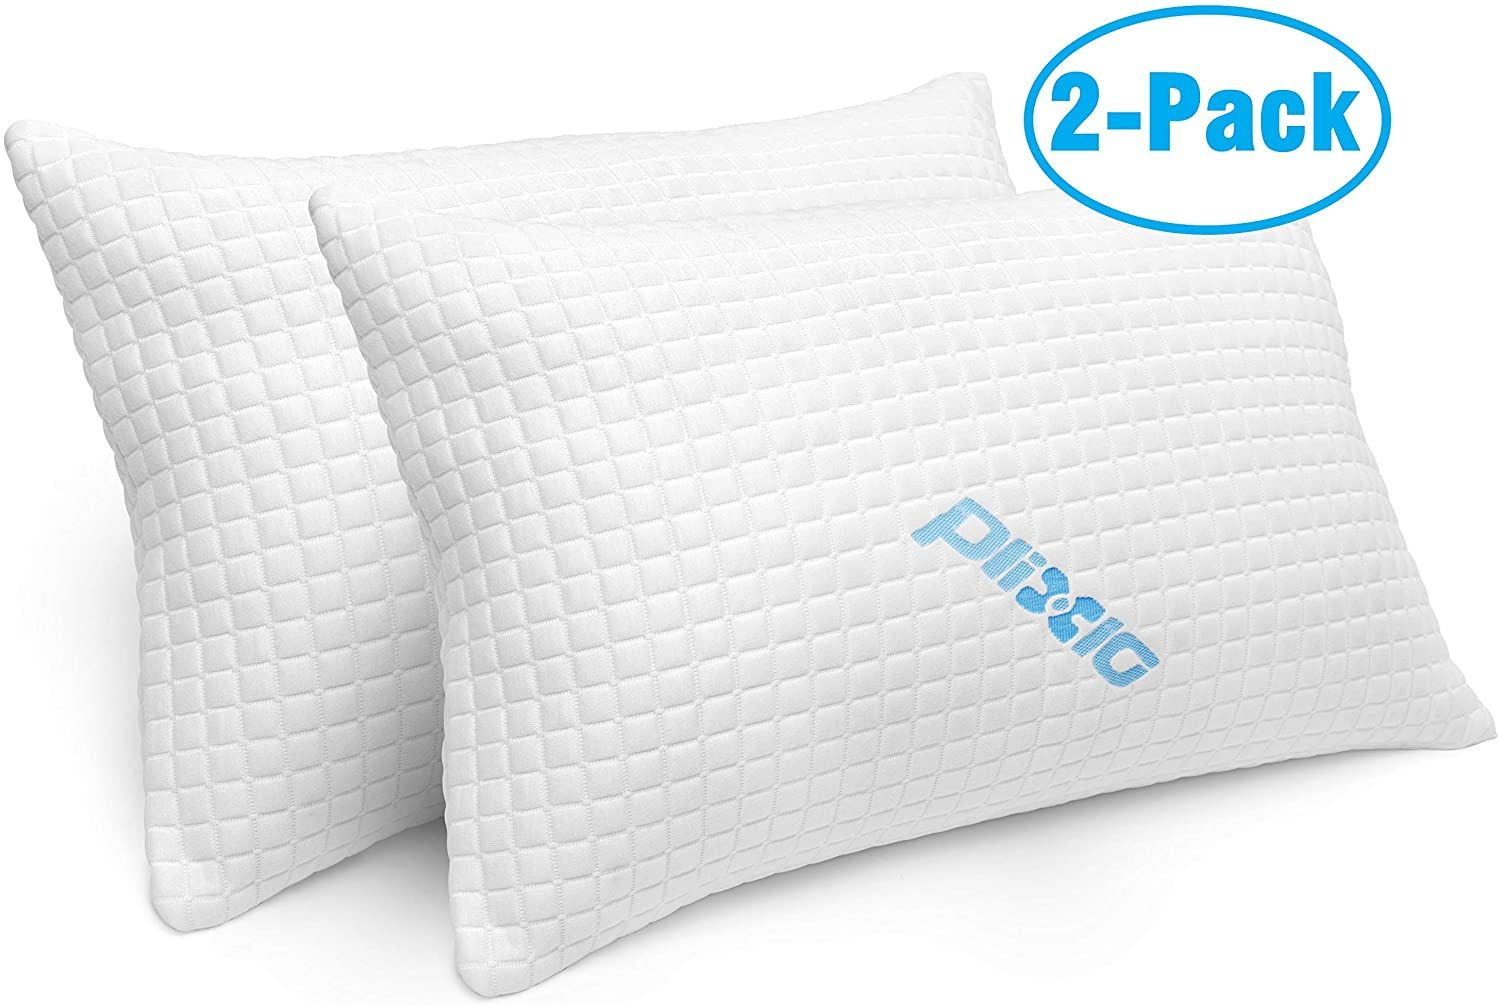 2 Pack Shredded Memory Foam Bed Pillows For Sleeping Bamboo Cooling Hypoallergenic Sleep Pillow Foam Pillows Bamboo Pillow Bed Pillows